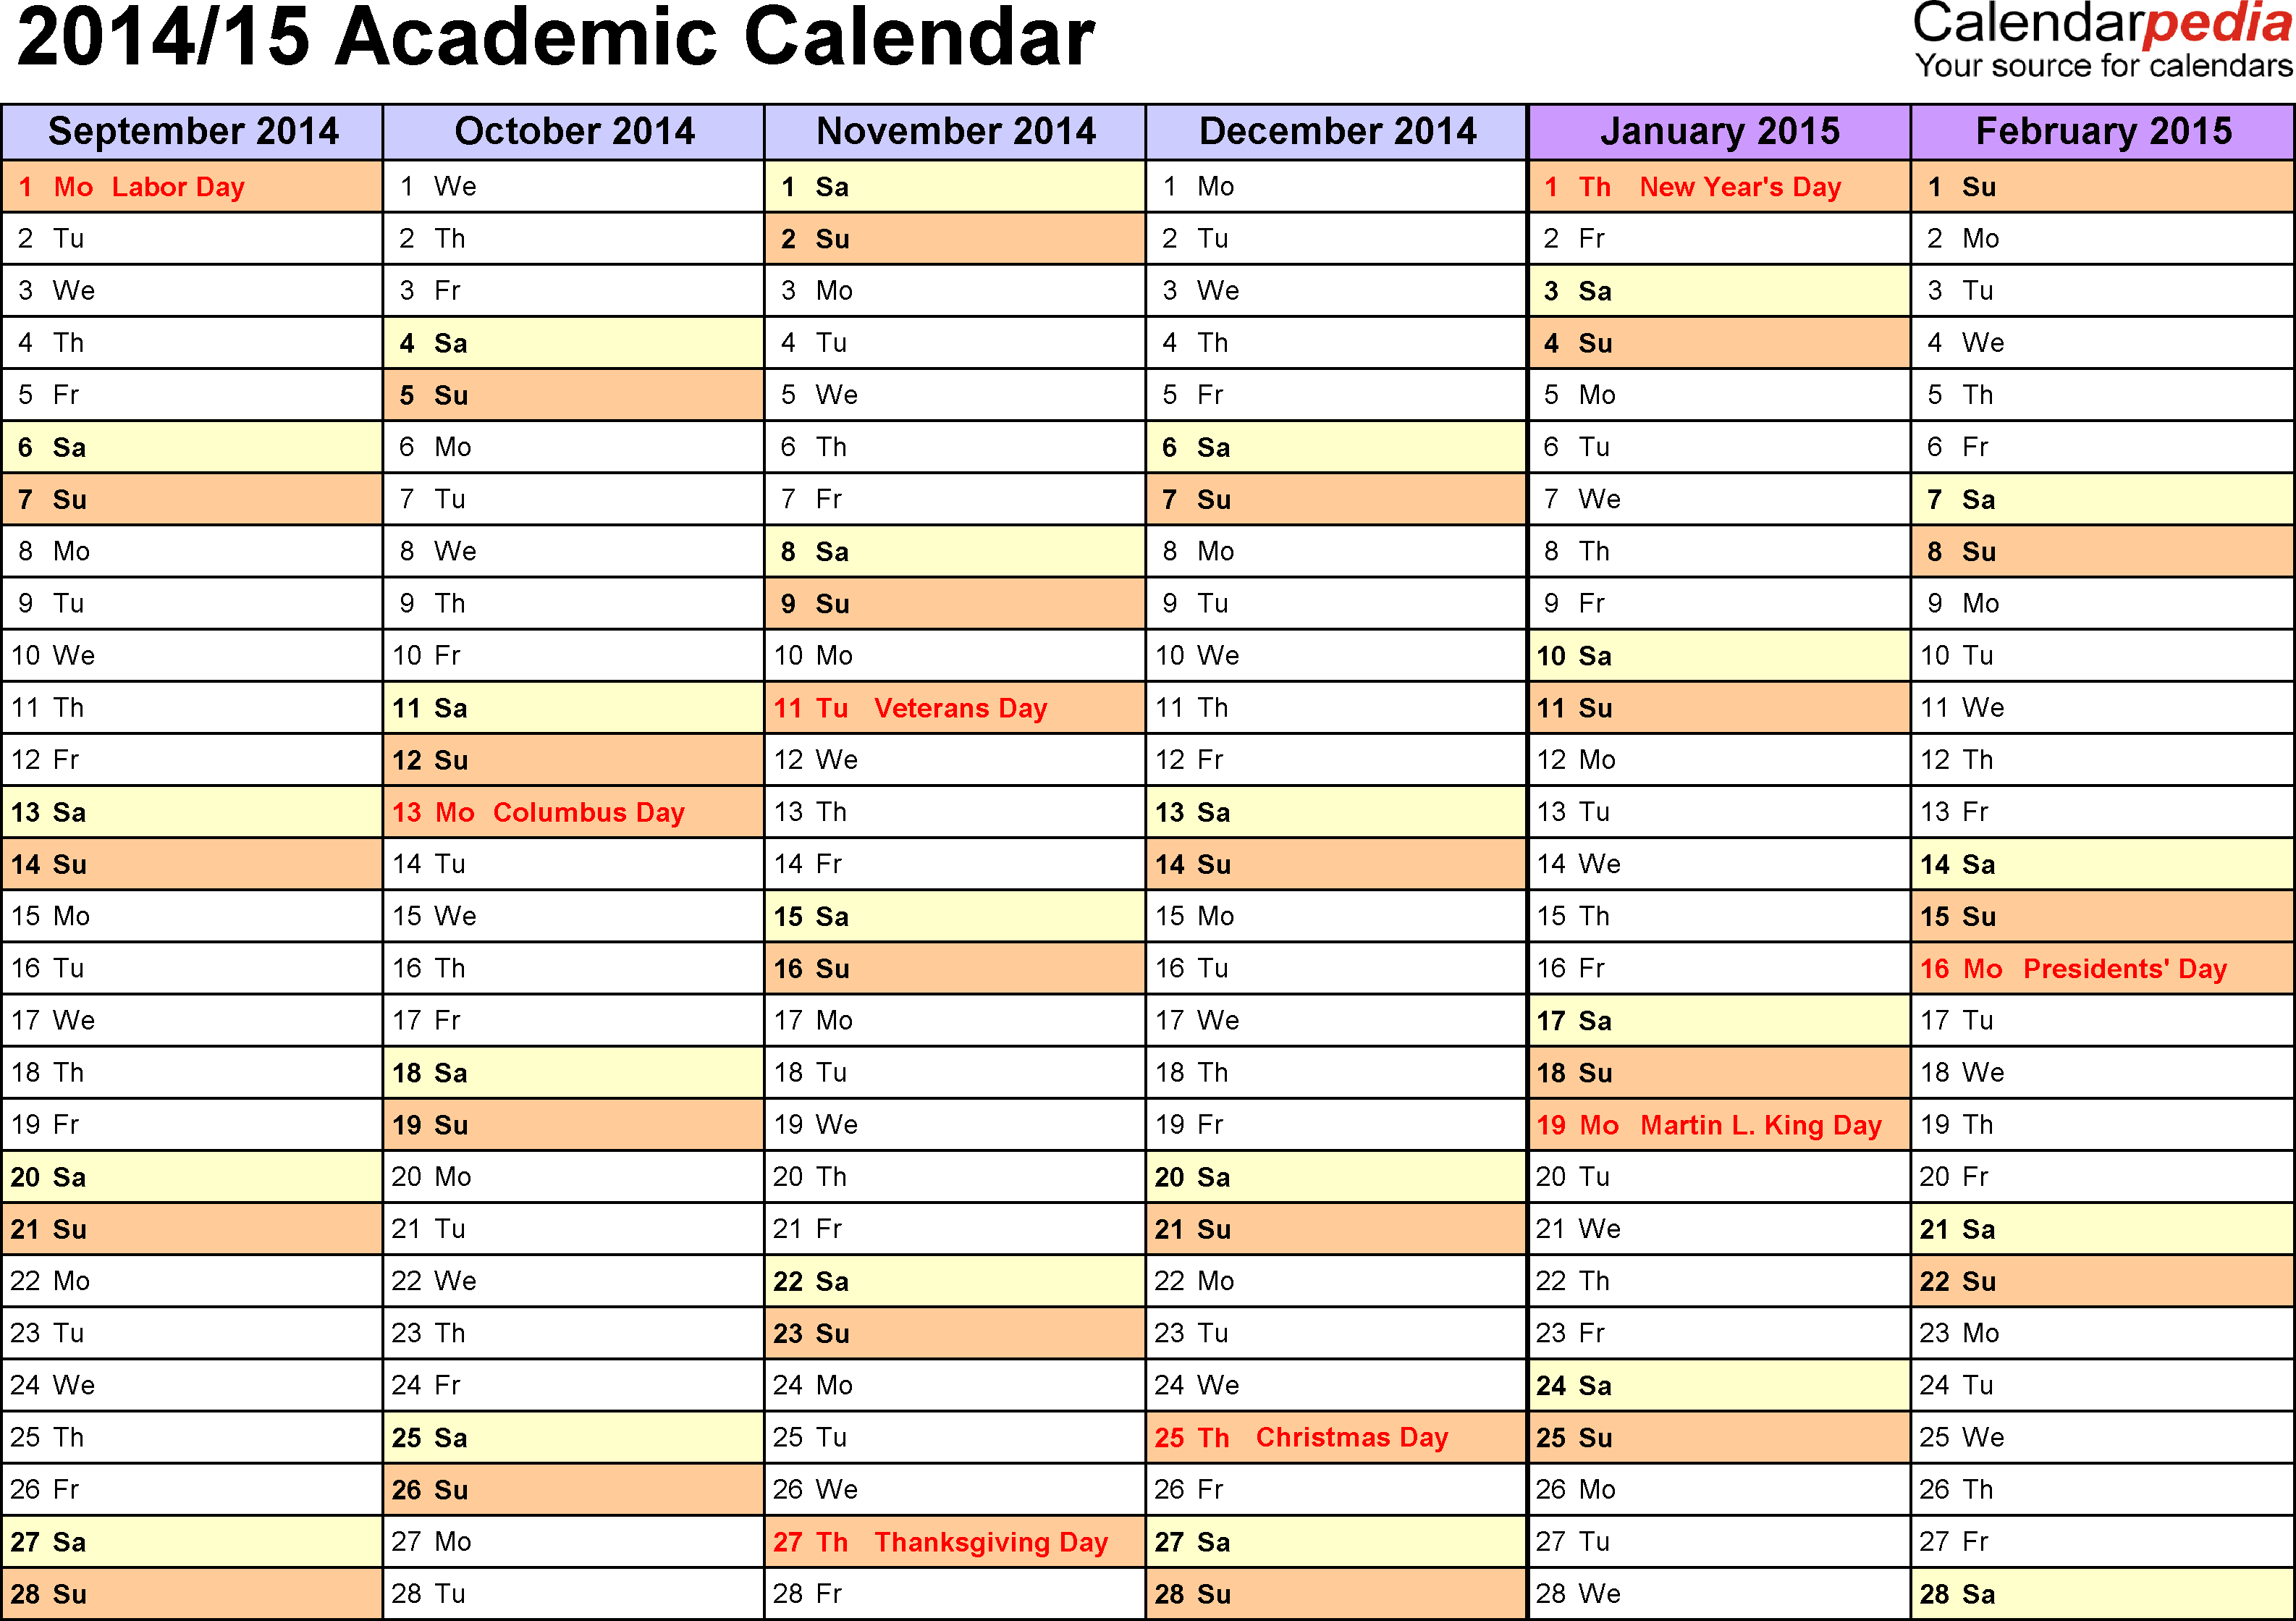 Template 2: Academic calendar 2014/15 for Excel, landscape orientation, months horizontally, 2 pages